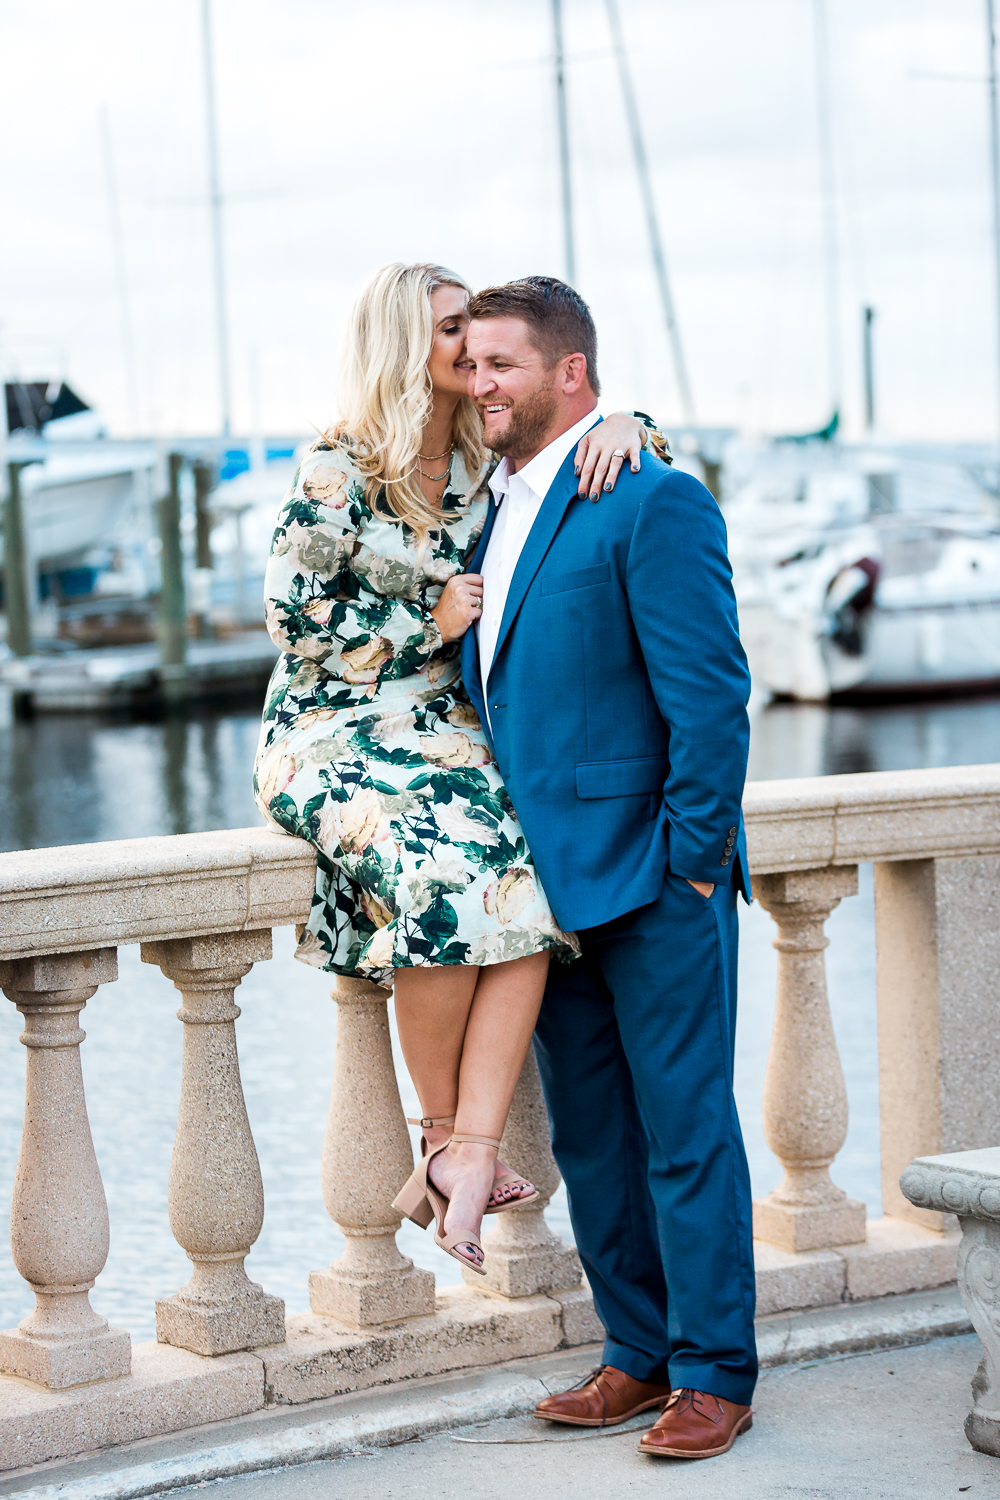 romantic engagement puicture by the yacht club